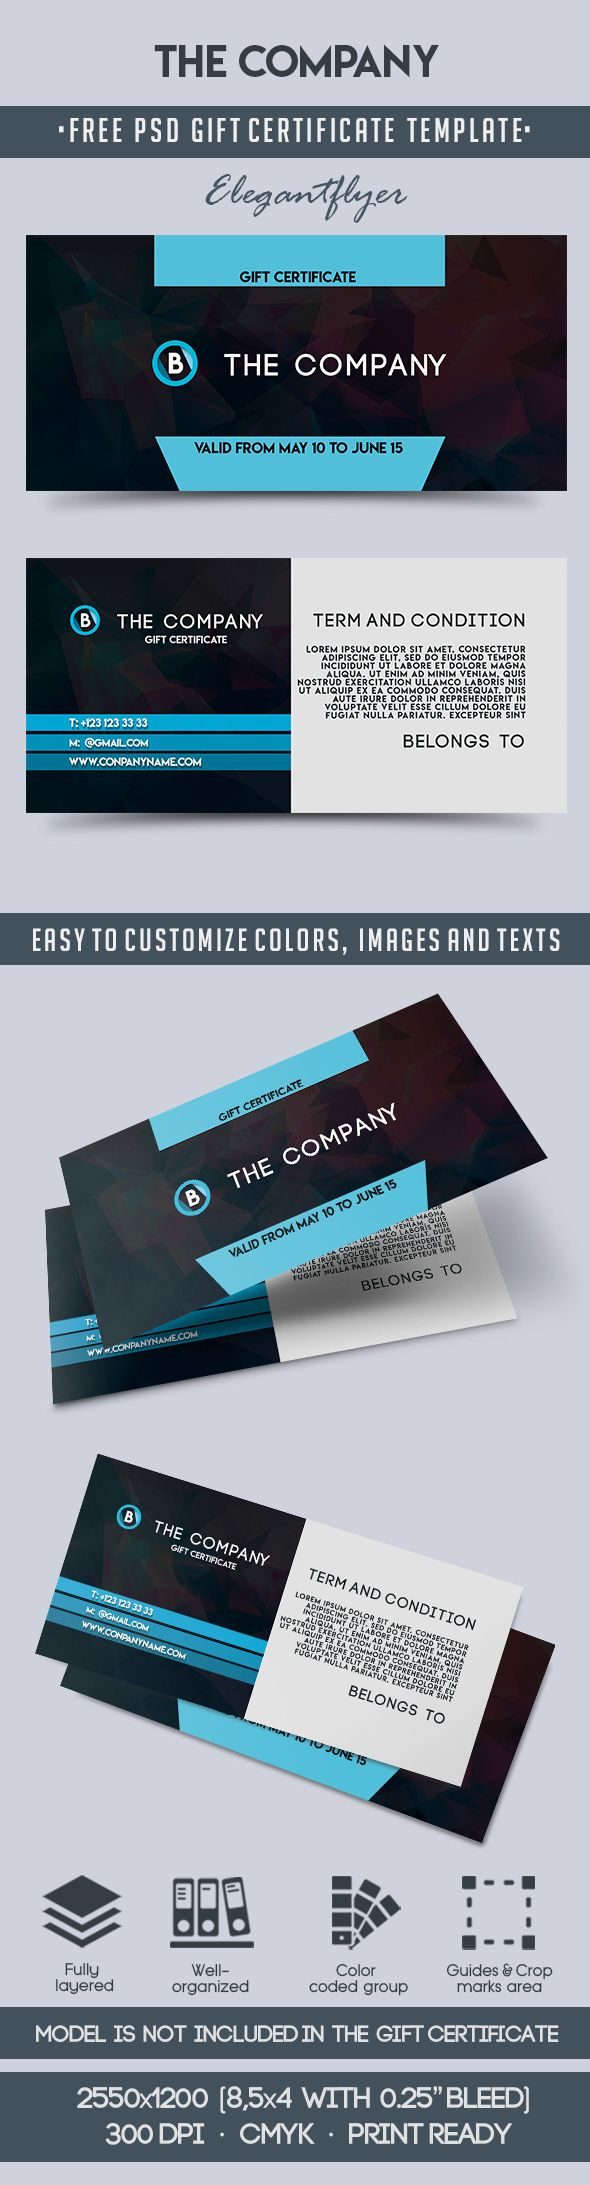 The Company – Free Gift Certificate PSD Template